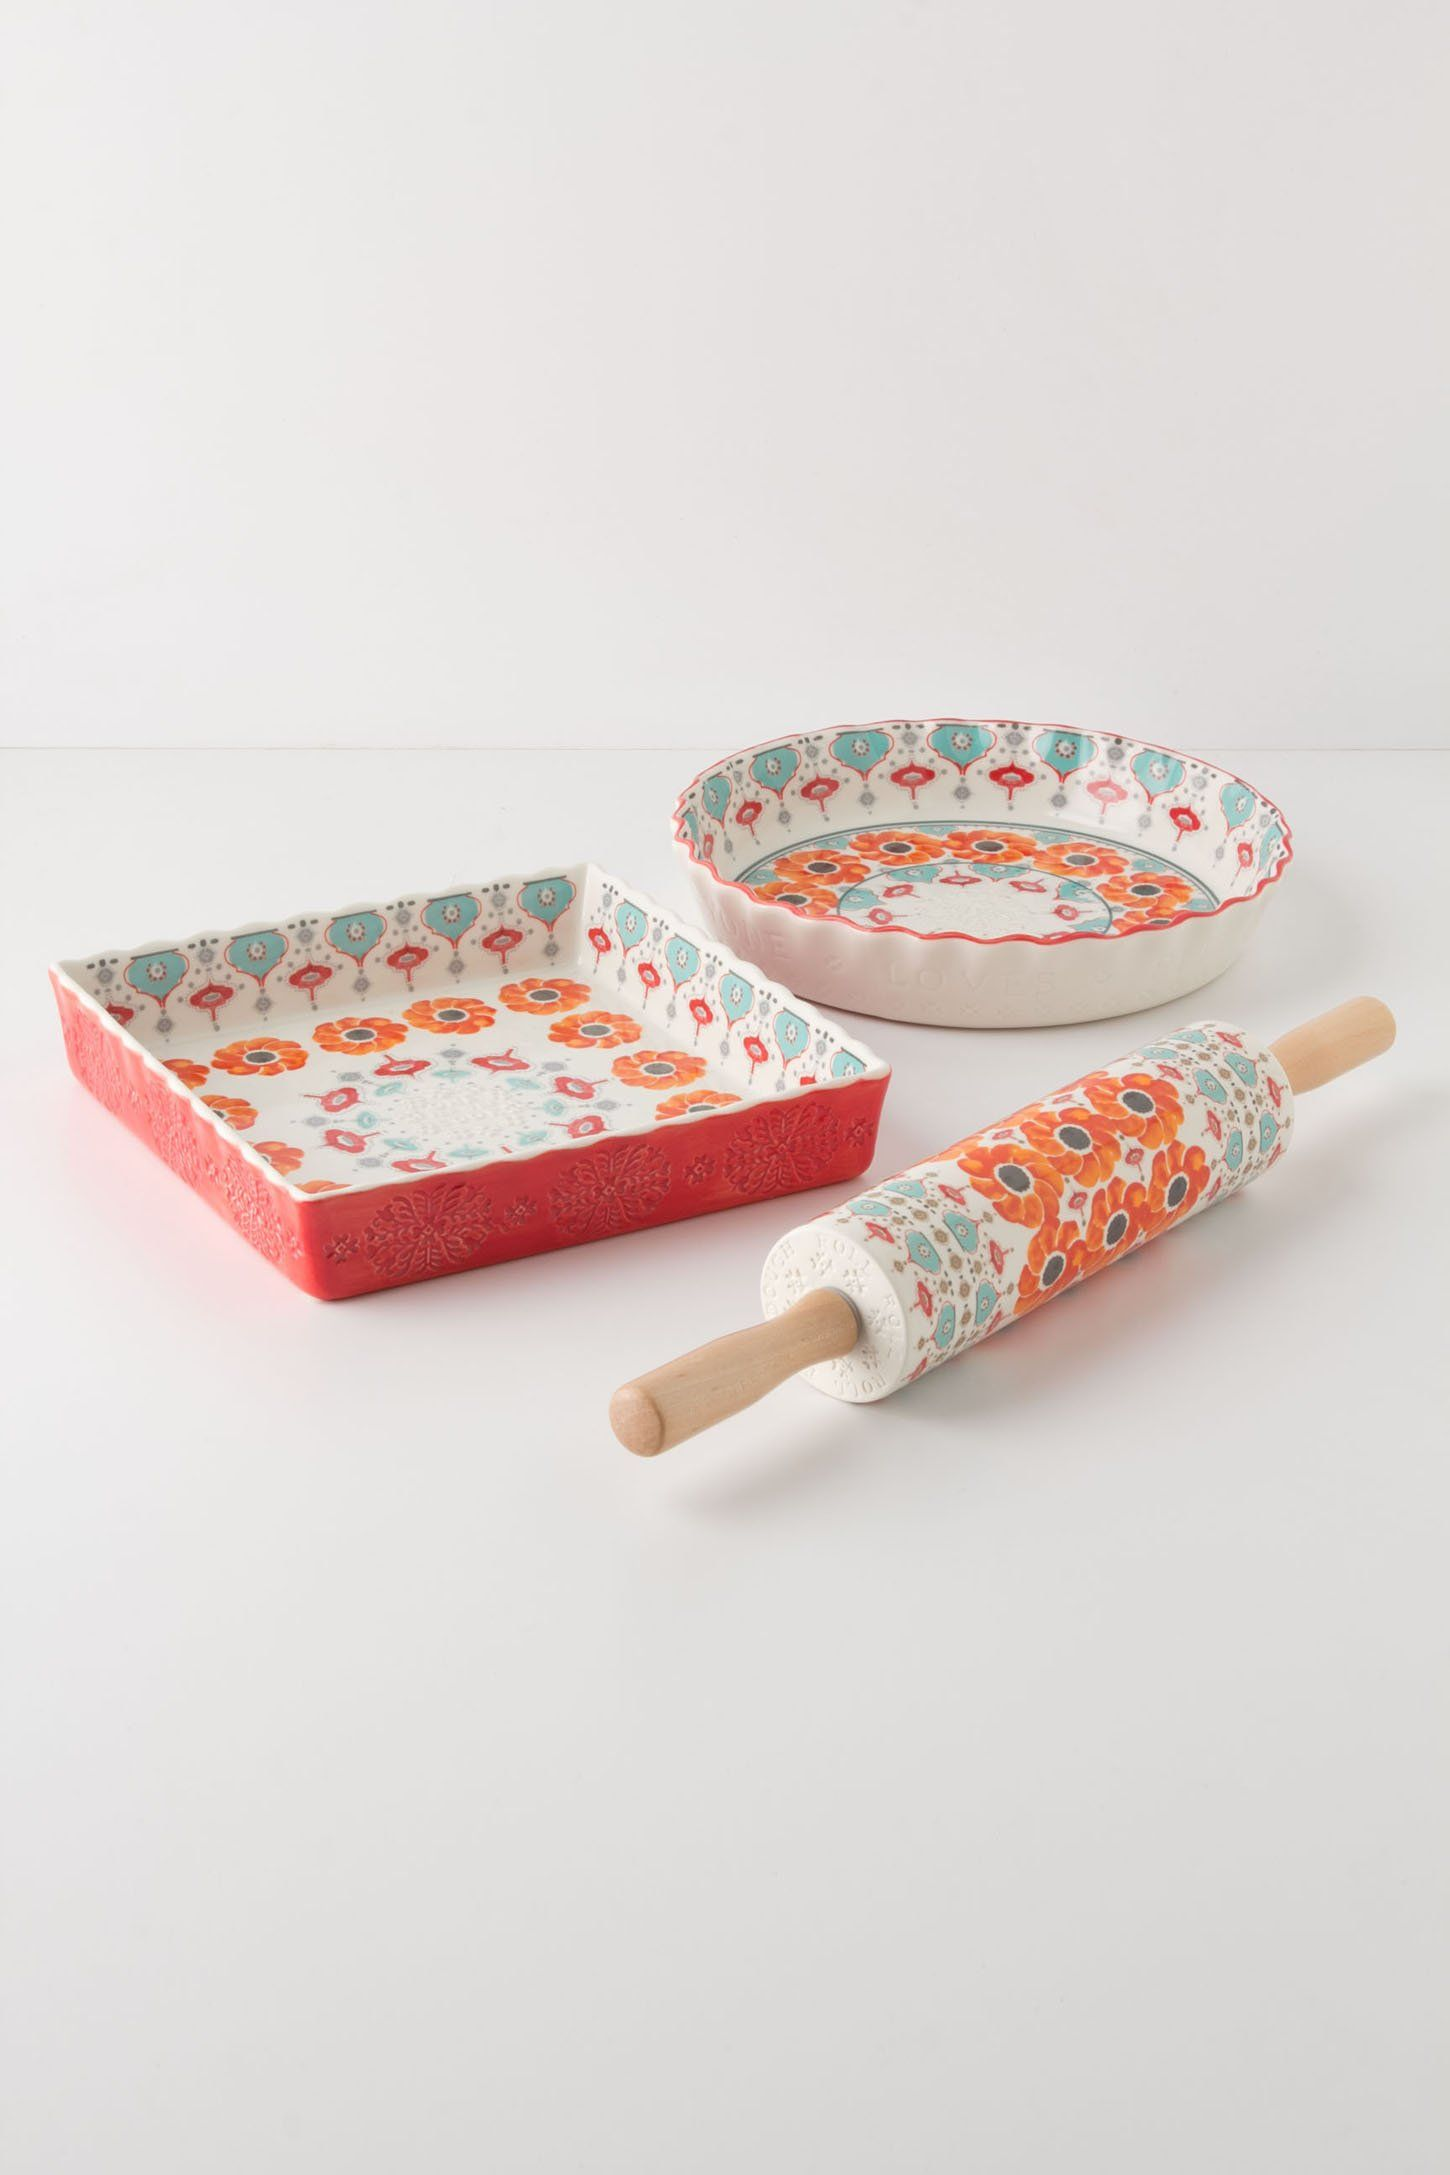 Poppy Ring Brownie Dish Pie Pan Rolling Pin Poppy Ring Cute